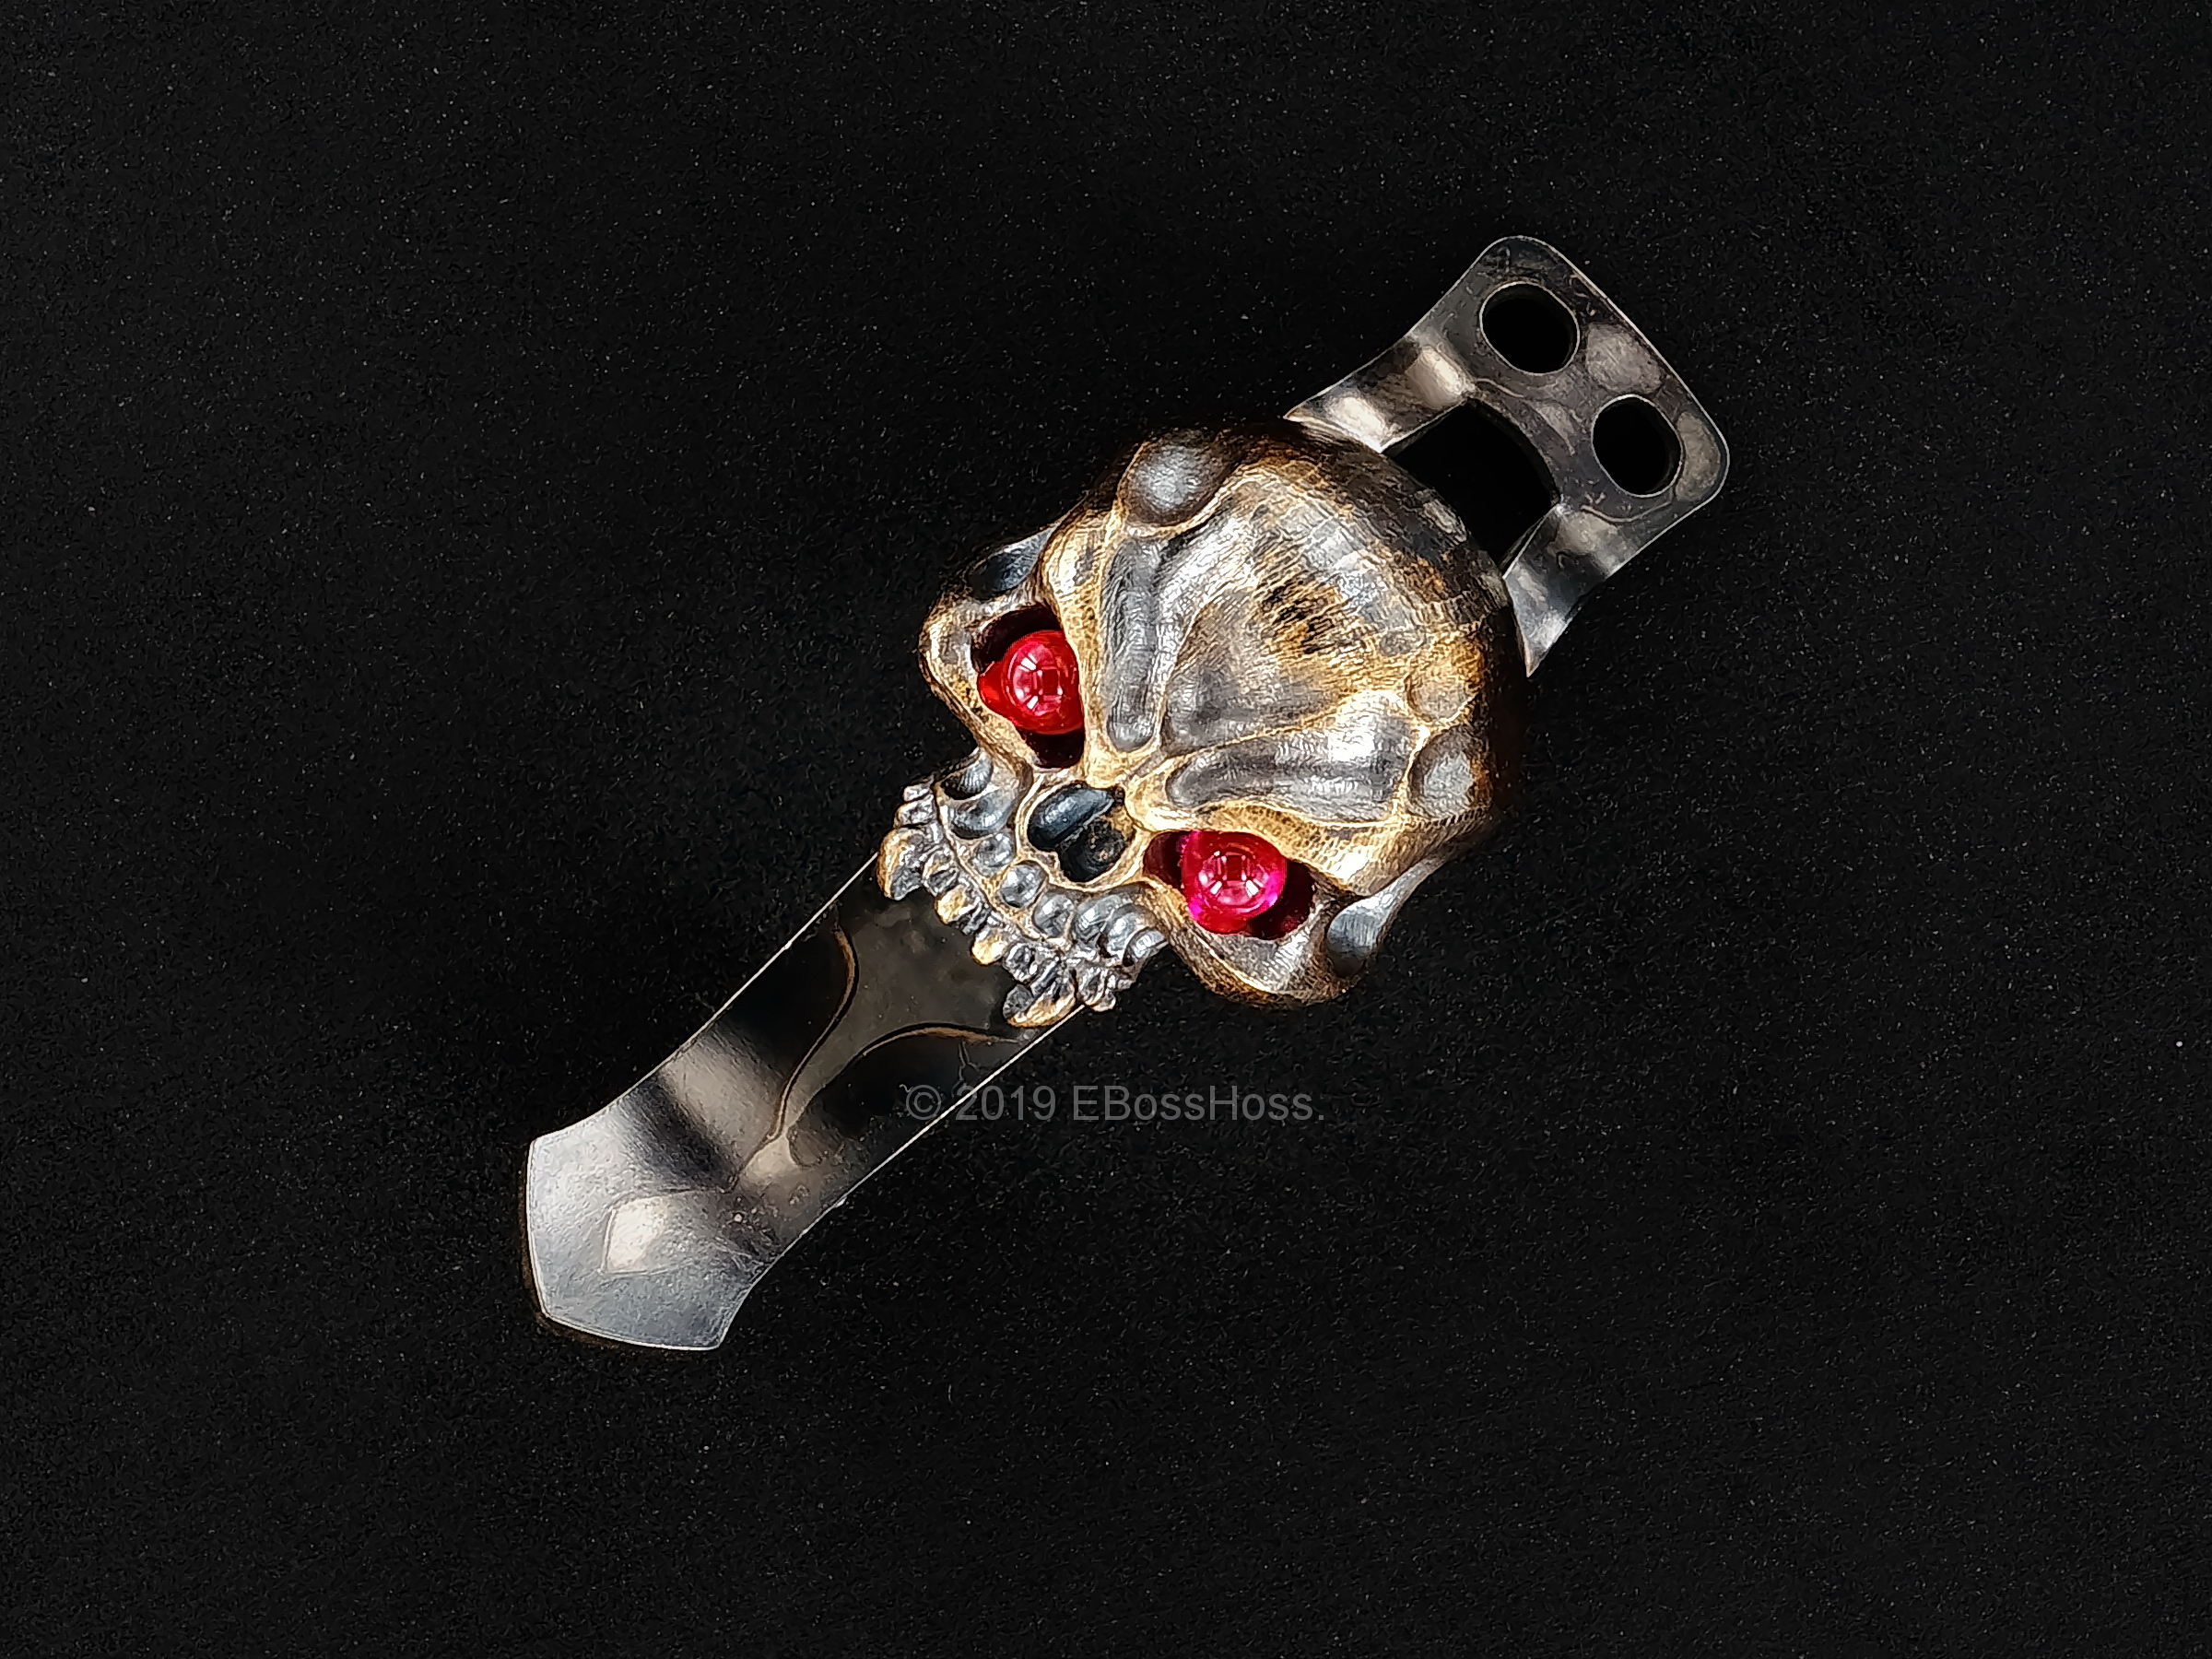 Derrick Obatake ''ONE'' Vigilant Large Hard Warrior Skull Torch Clip from Steel Flame